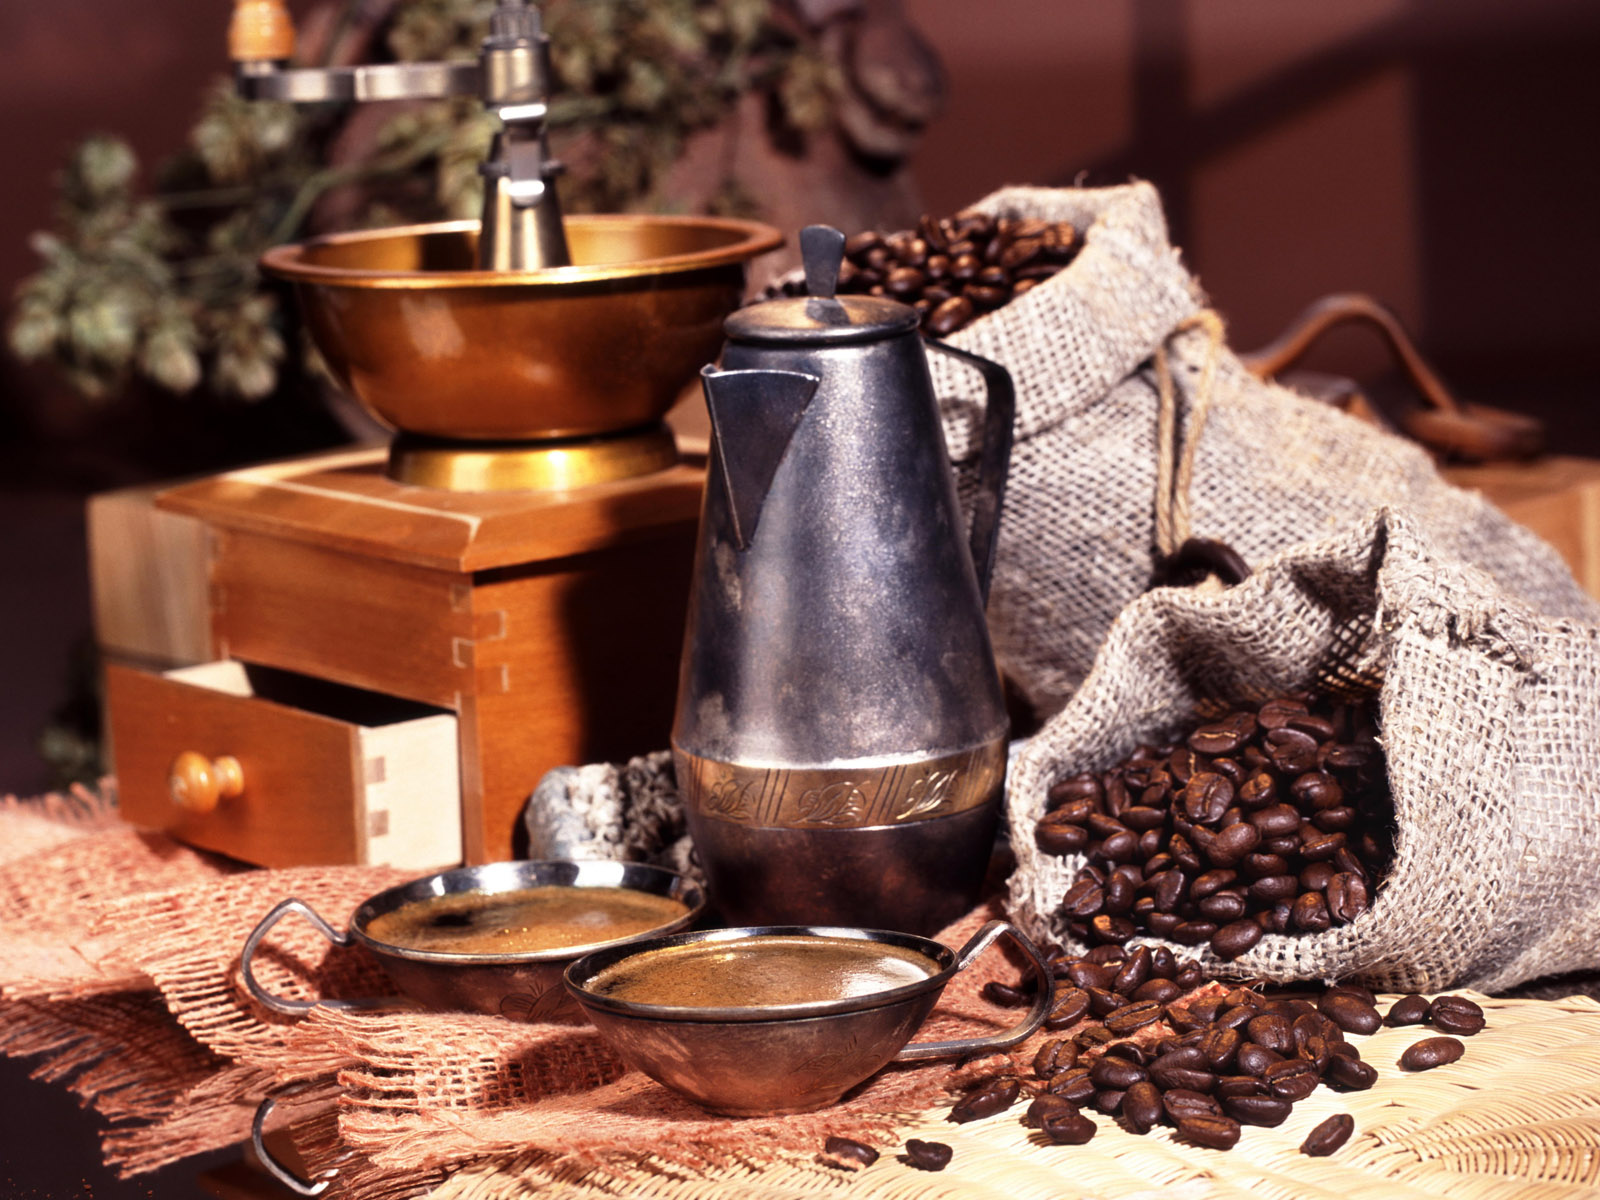 Coffee wallpaper high definition 14014